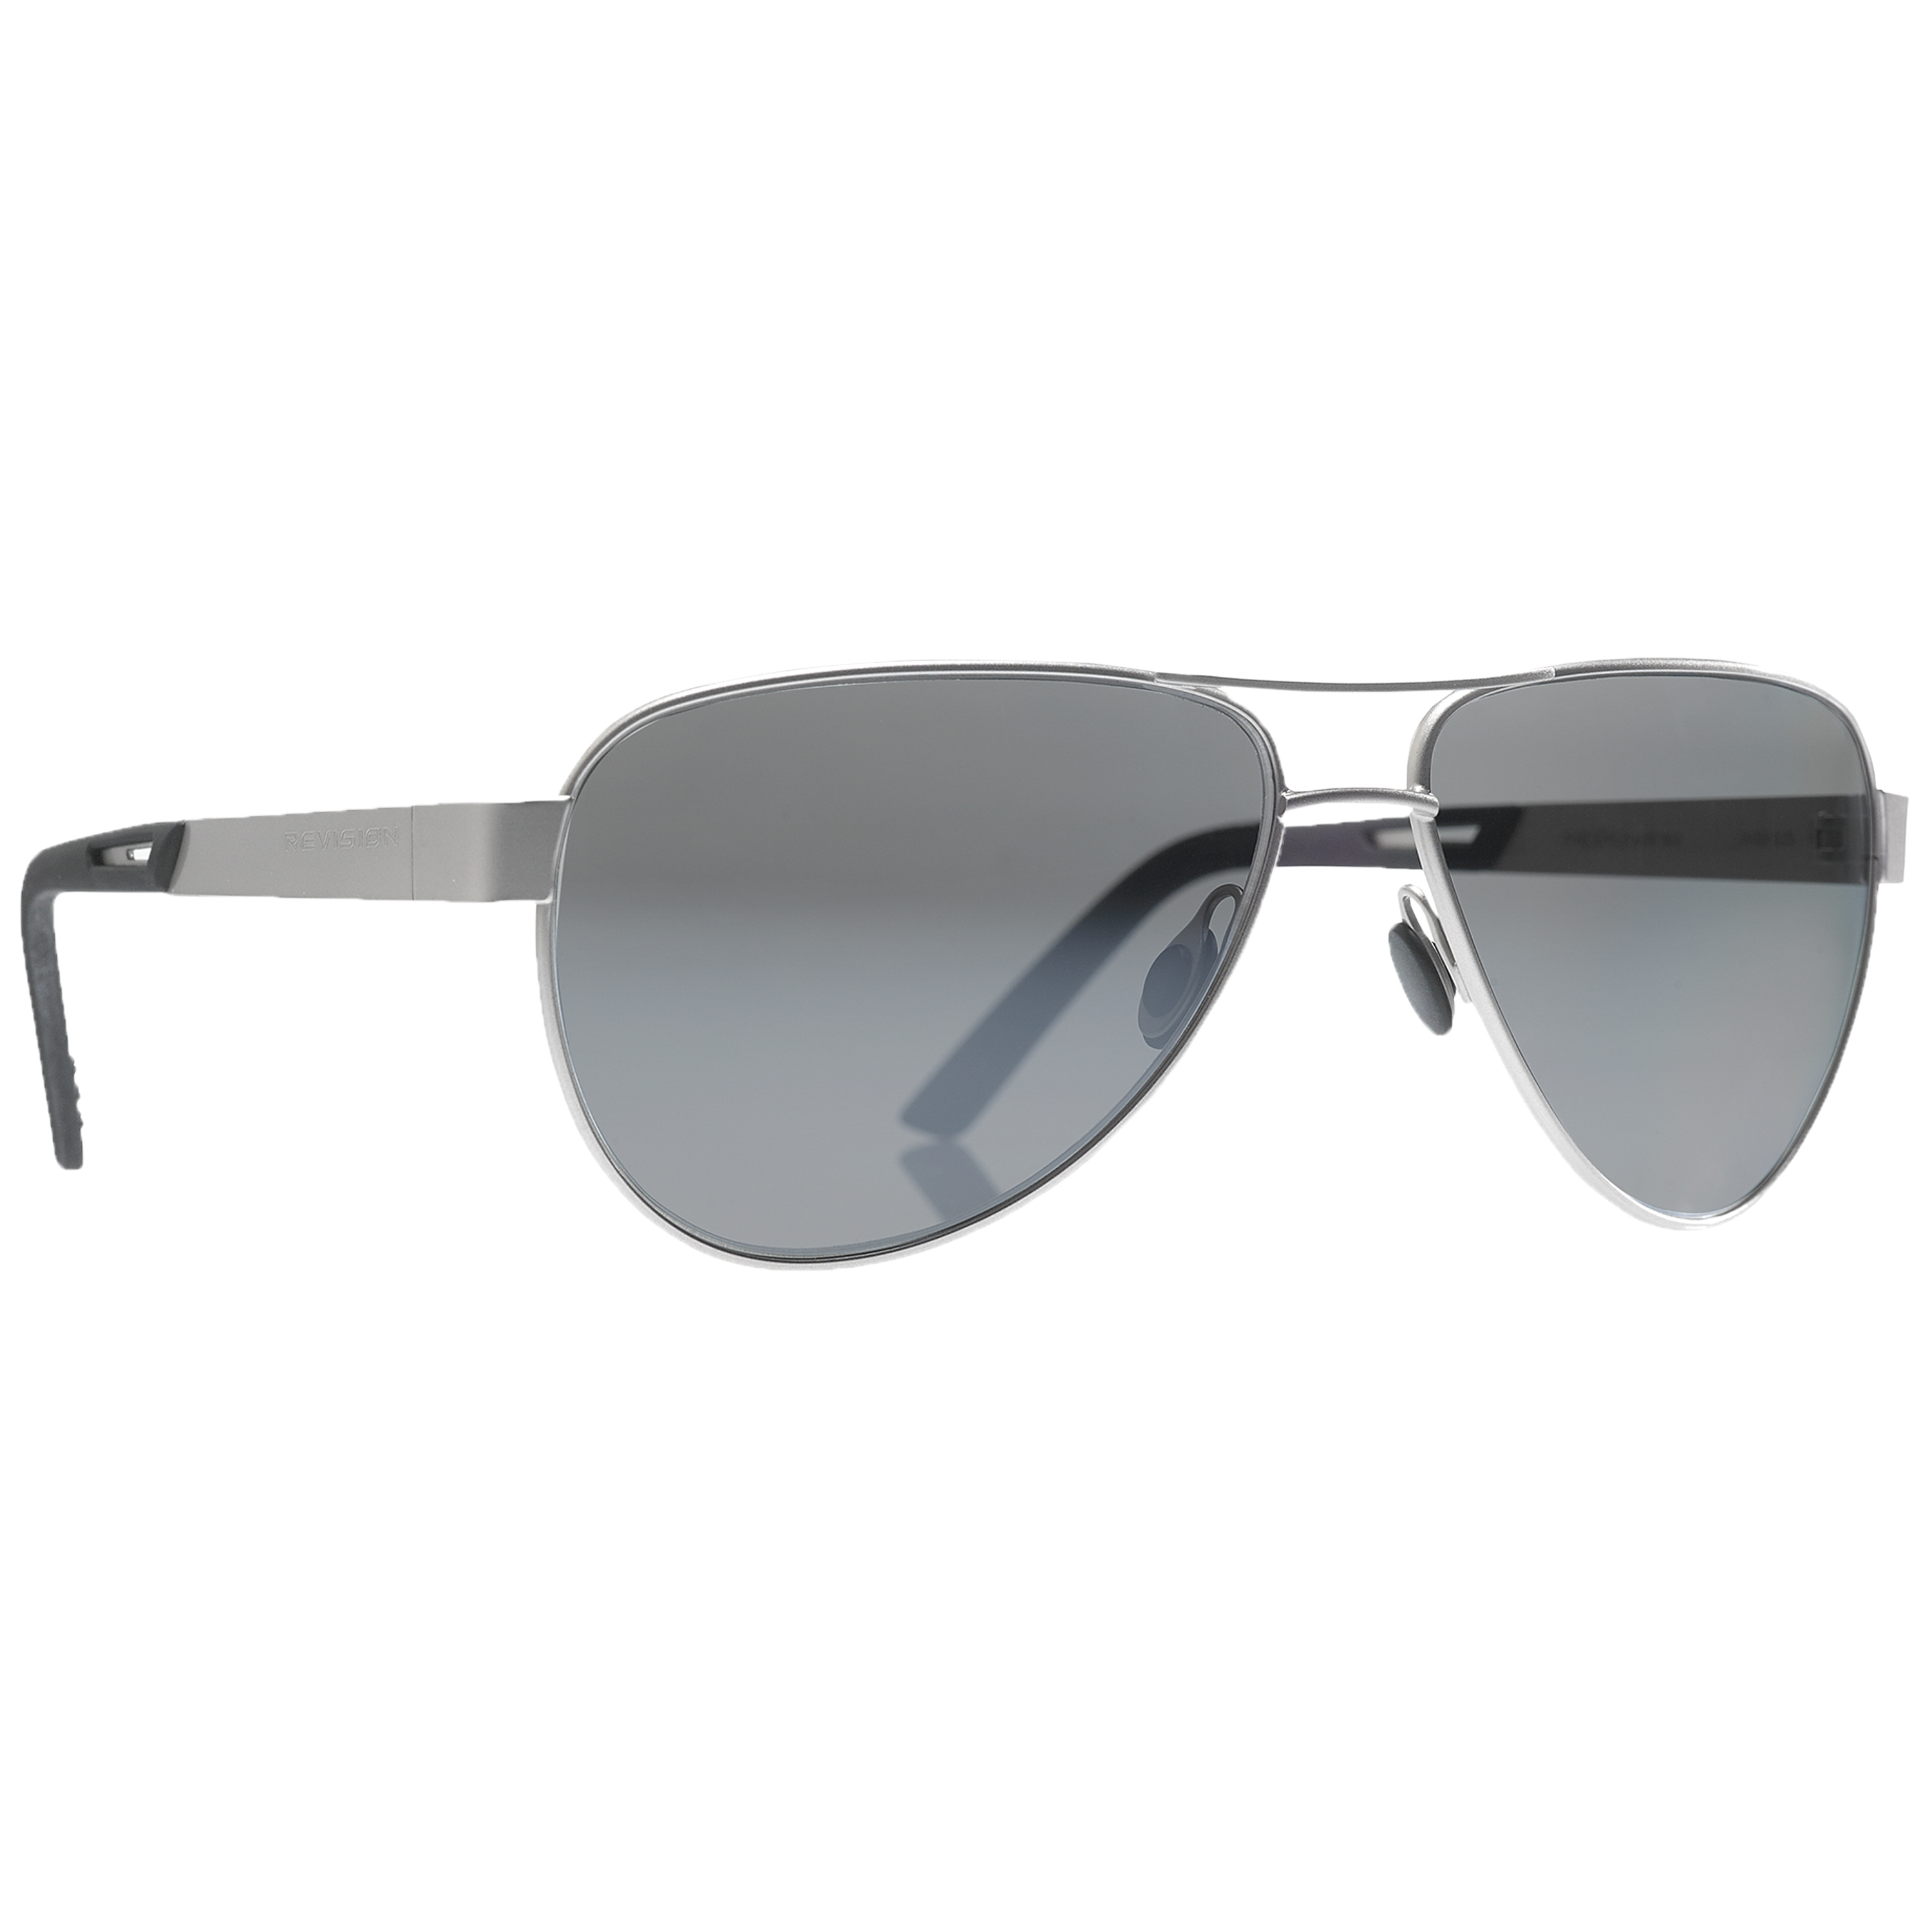 Revision Brille Alphawing Sport silver mirror